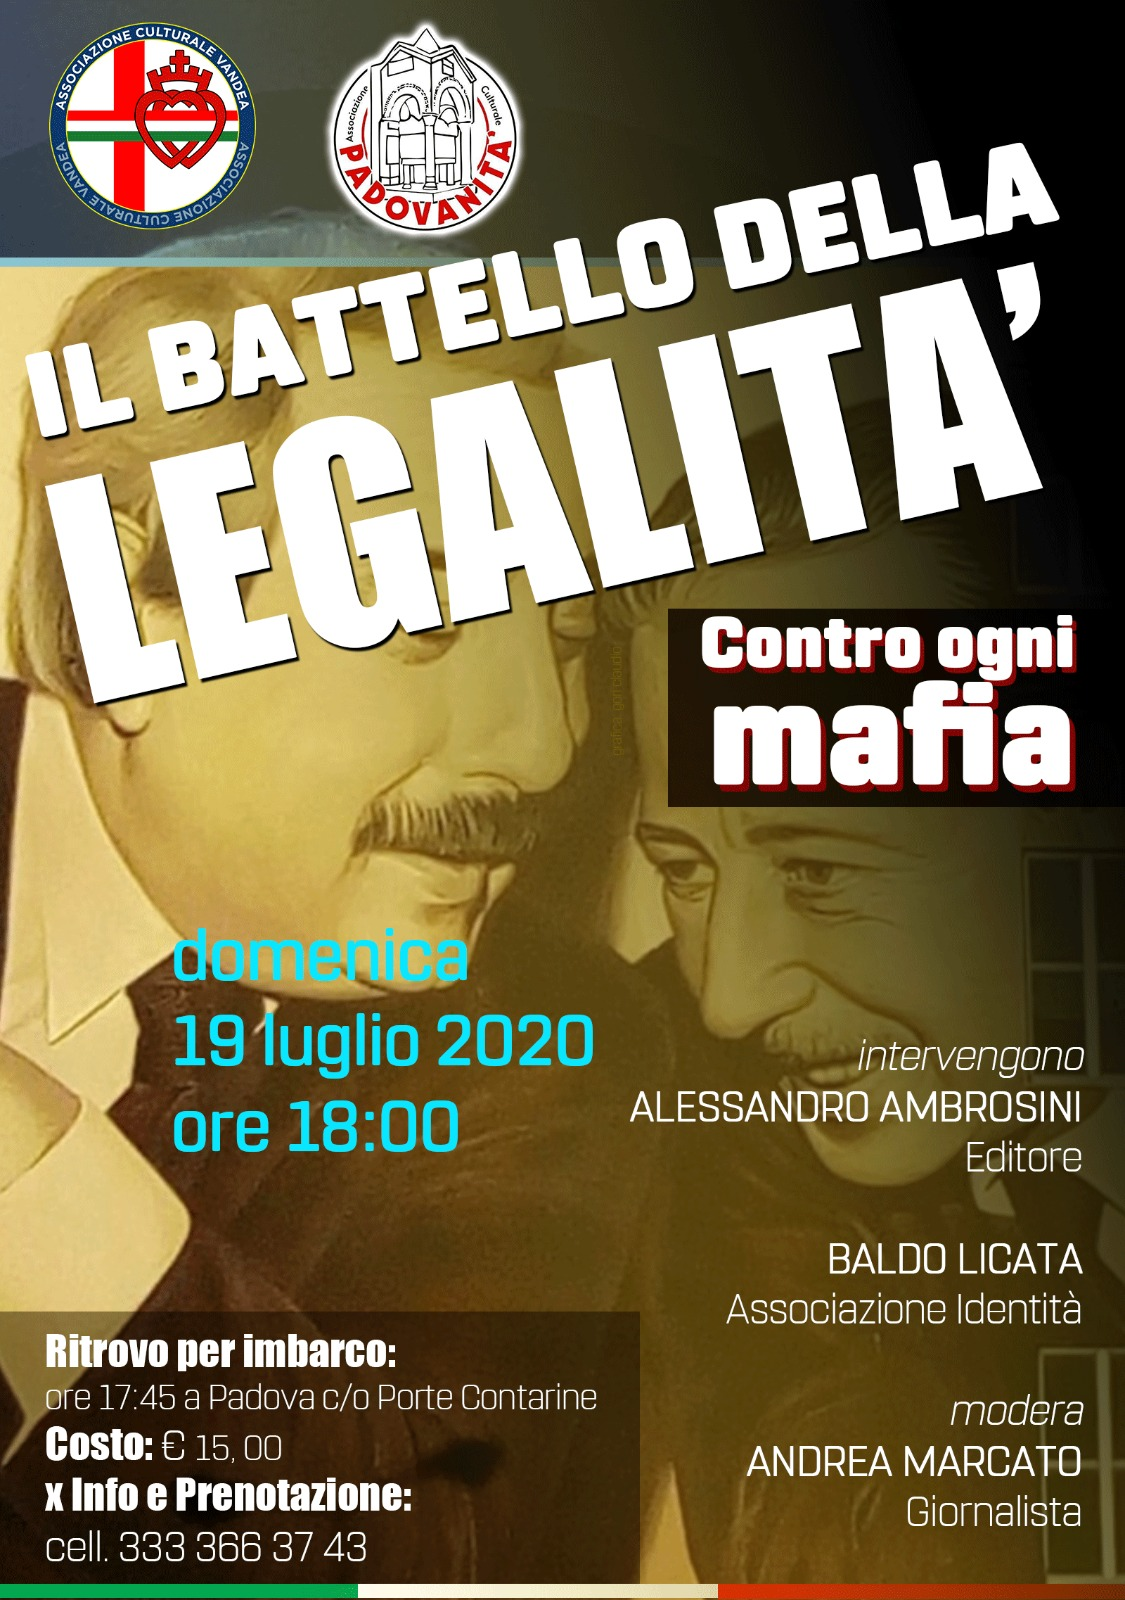 Battello Legalita